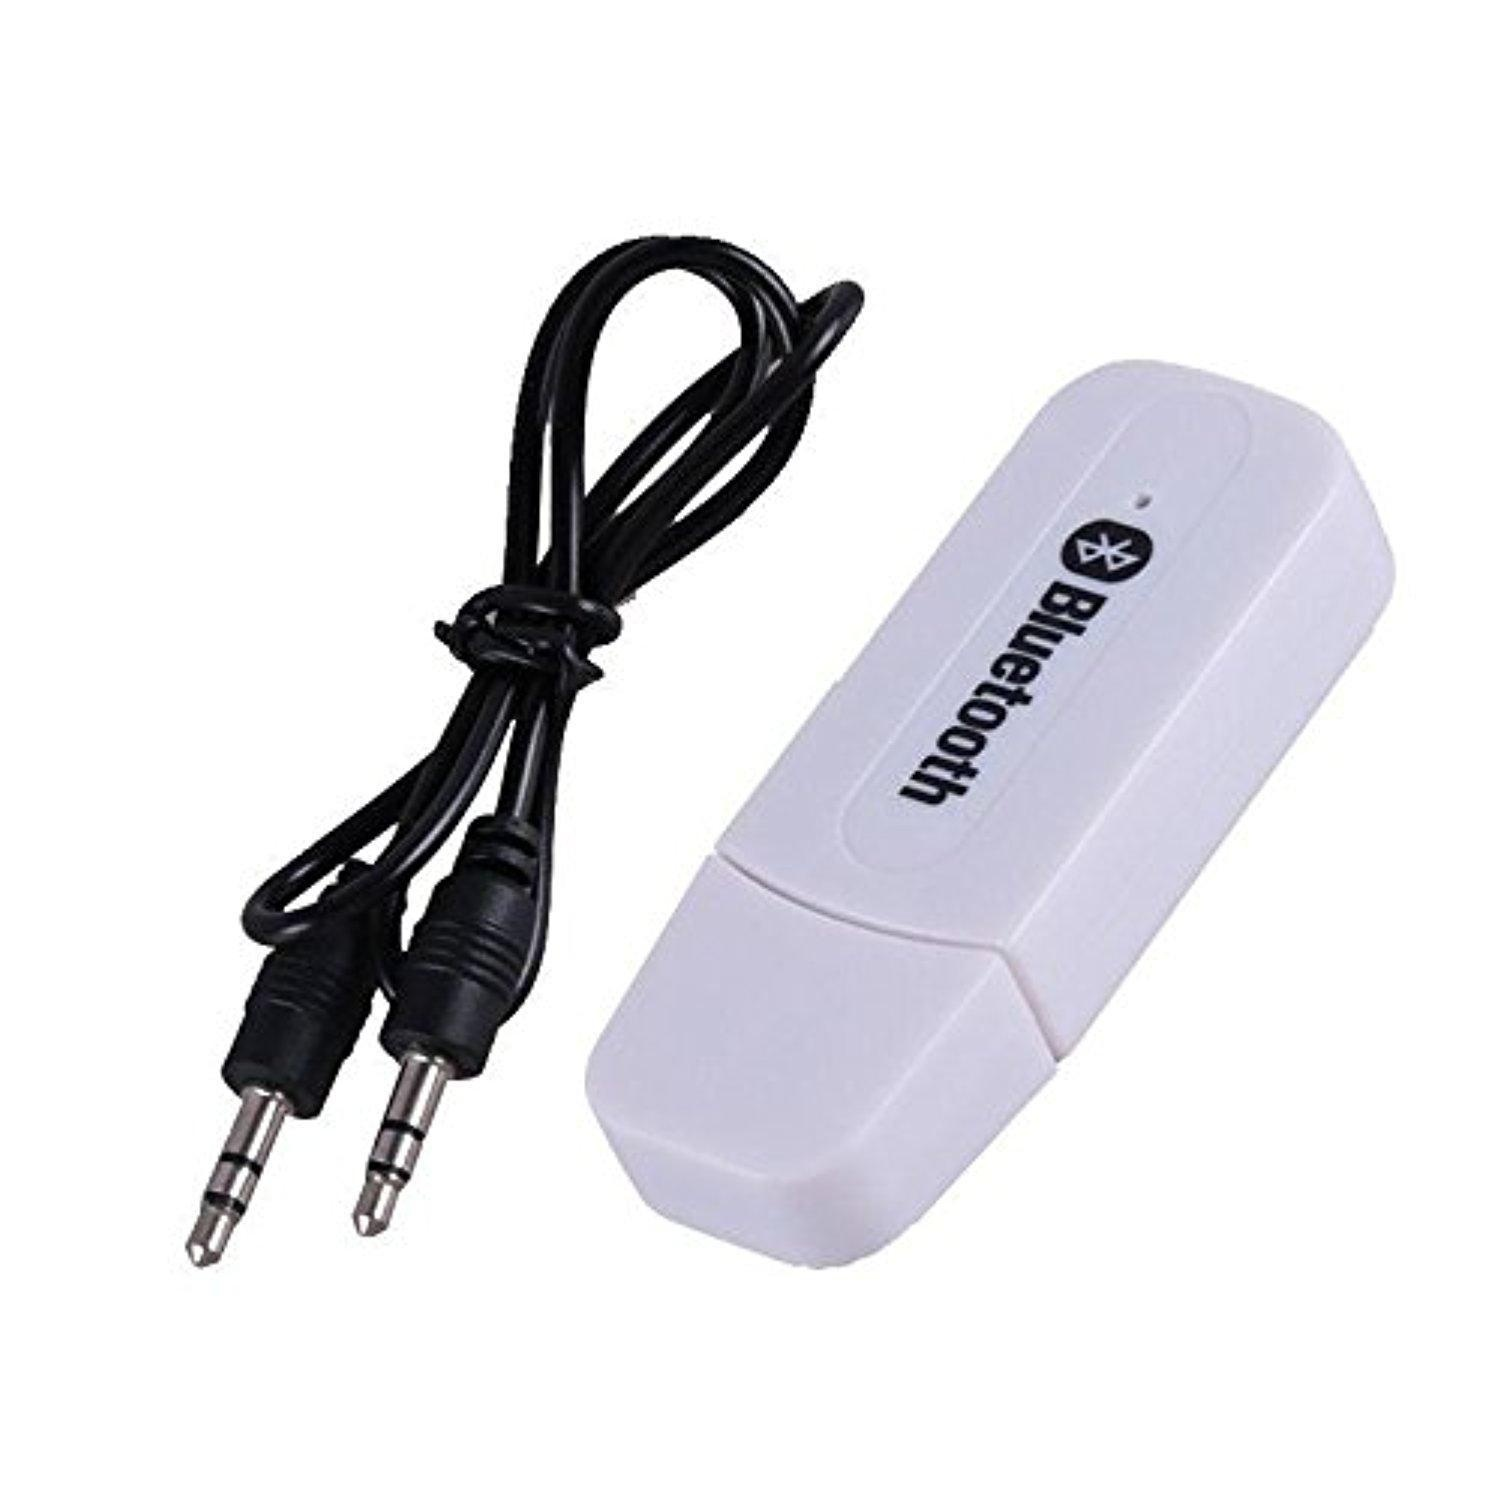 Kobwa Mini 3.5mm Stereo Audio Music Speaker USB Bluetooth Wireless Receiver Adapter for Home/Car Audio Stereo System